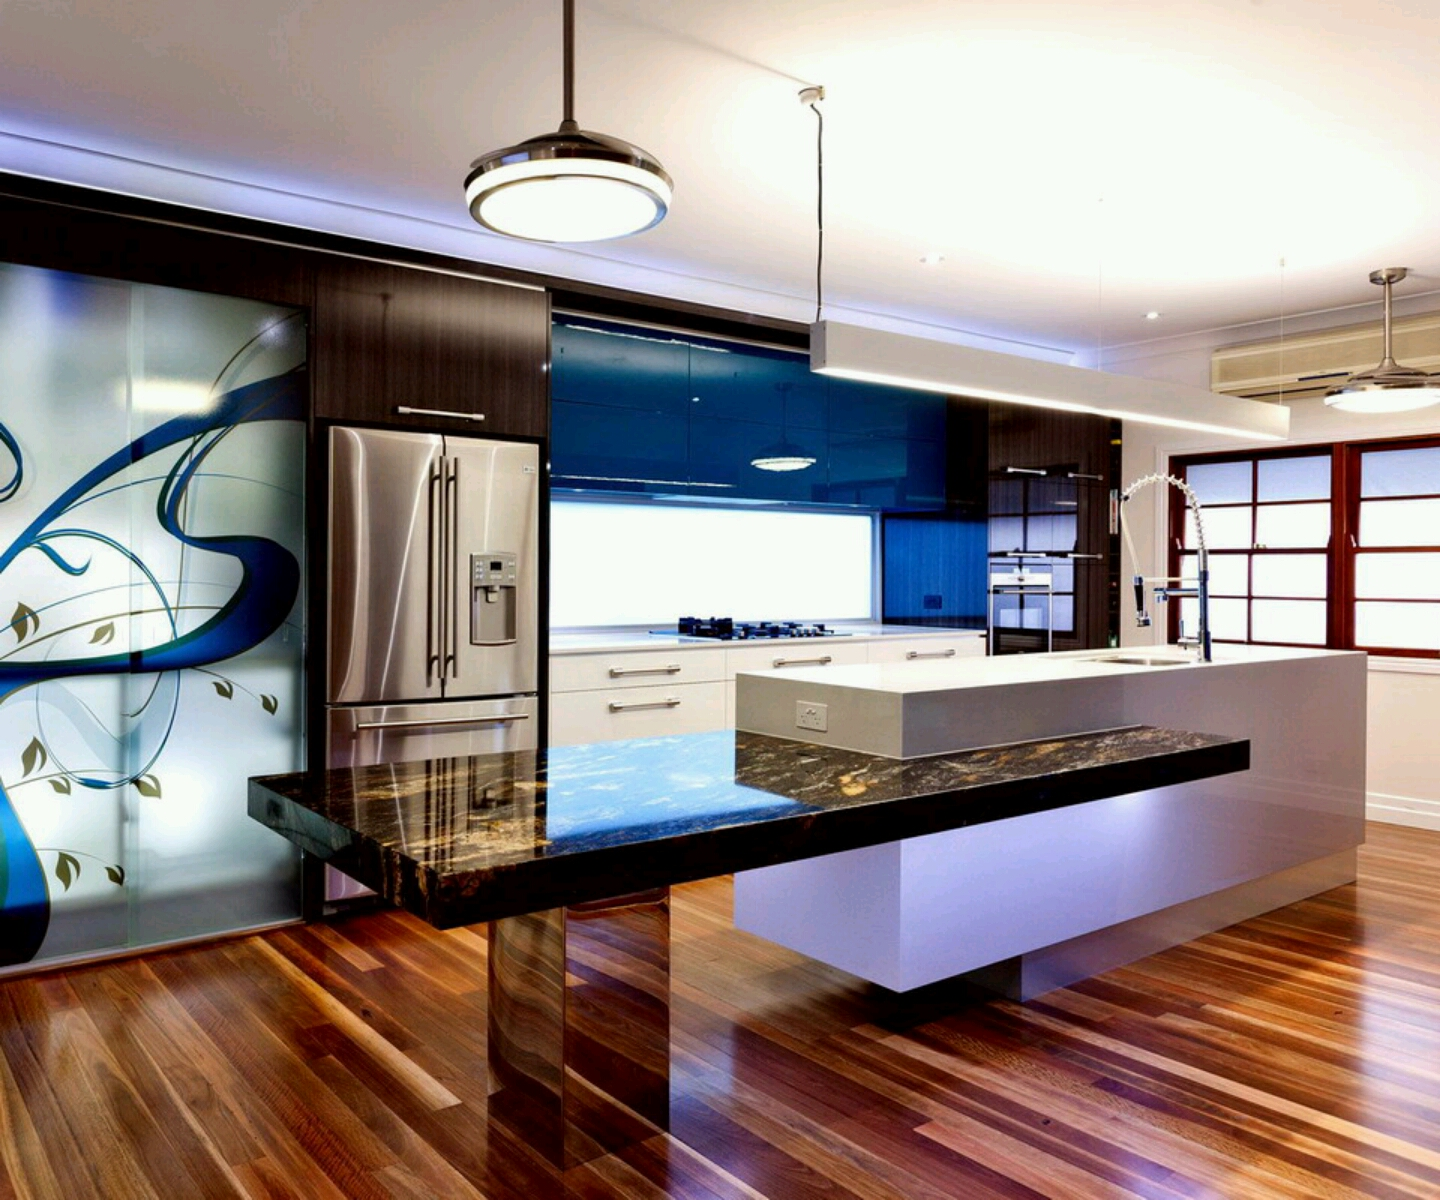 Ultra modern kitchen designs ideas new home designs for New kitchen designs images